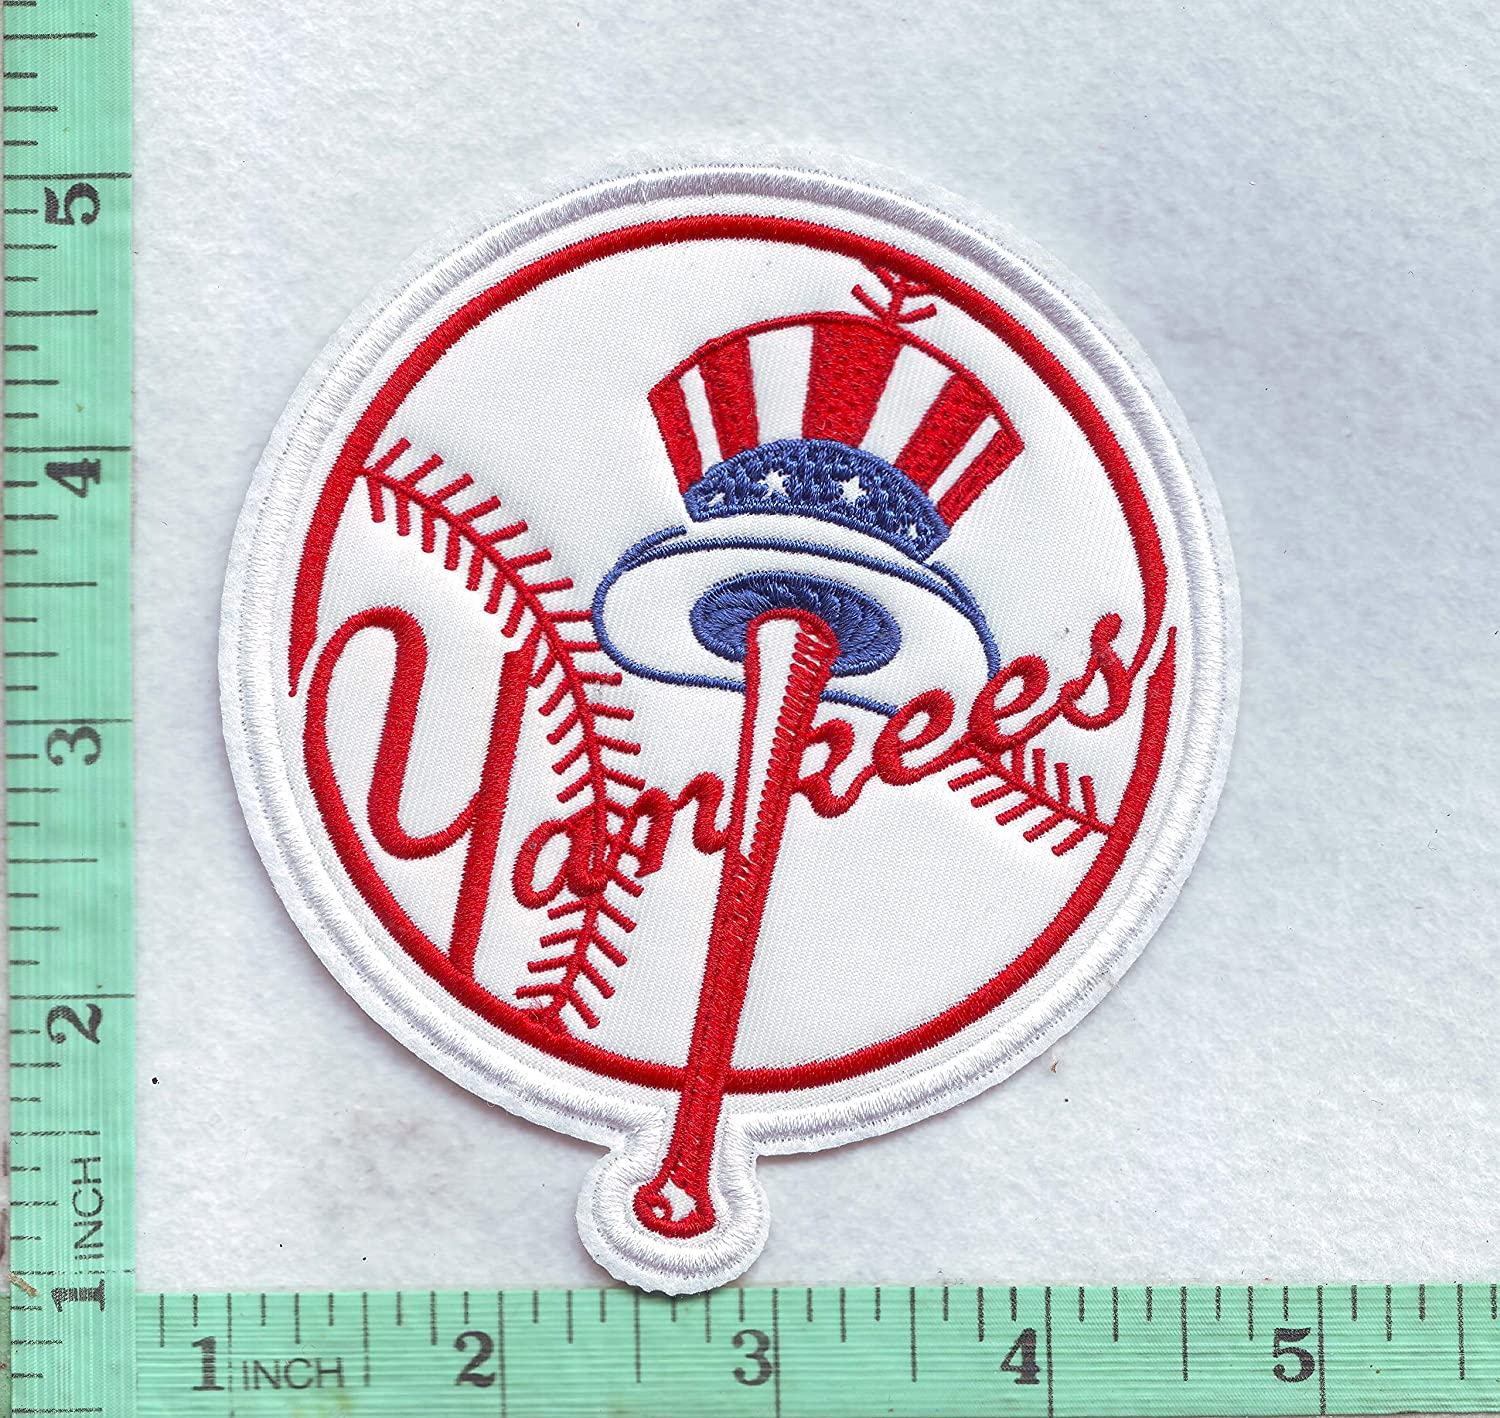 New York Team Patch 3.5 inch for Jersey T-Shirt Jacket Hoodies White